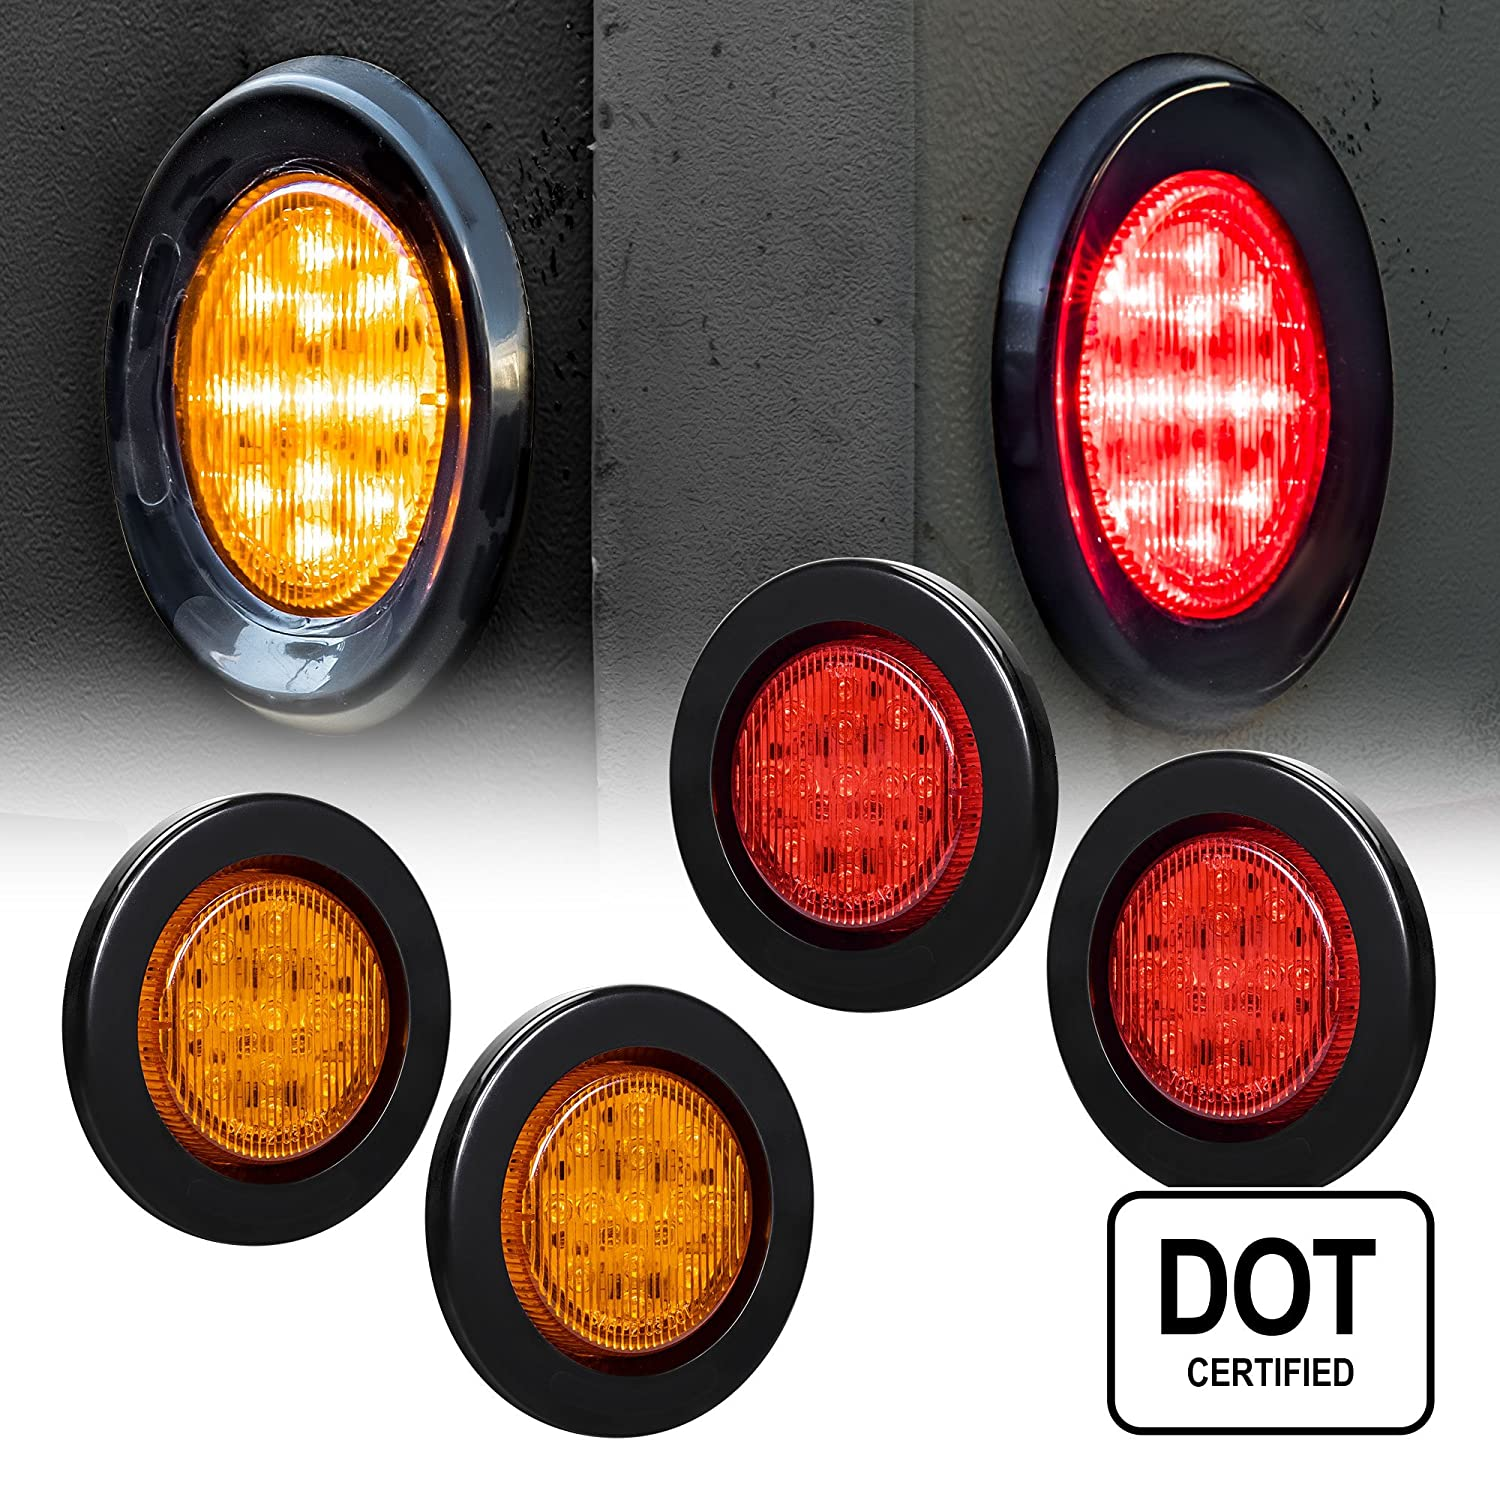 2 PC 2.5' Round LED Light Side Marker- Two in One Reflector Light [Polycarbonate Reflector] [13 LEDs] [Rubber Grommet] [IP 67] for Trailers - 1 Red and 1 Amber ONLINE LED STORE